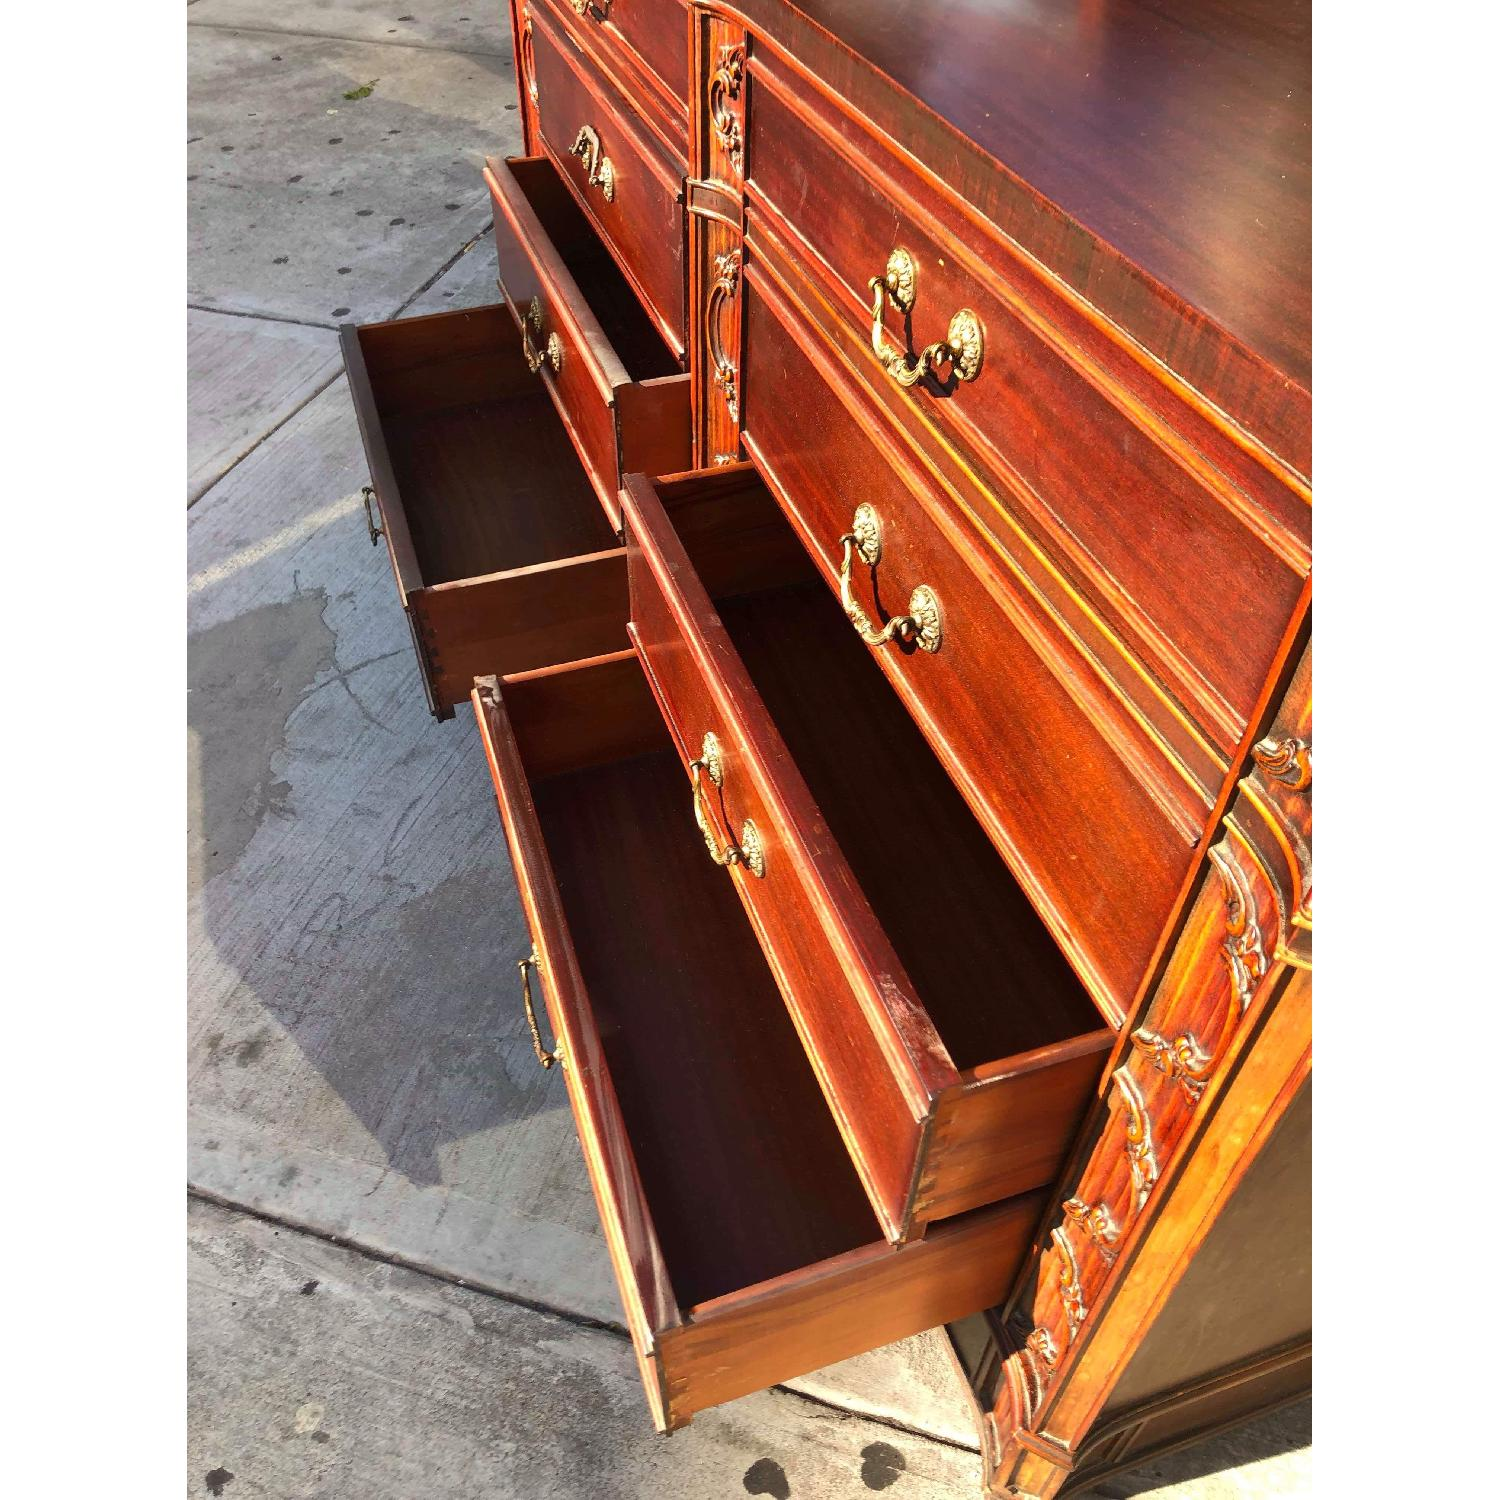 Antique 1930s Cherry Wood Leather Front 8 Drawer Dresser - image-13